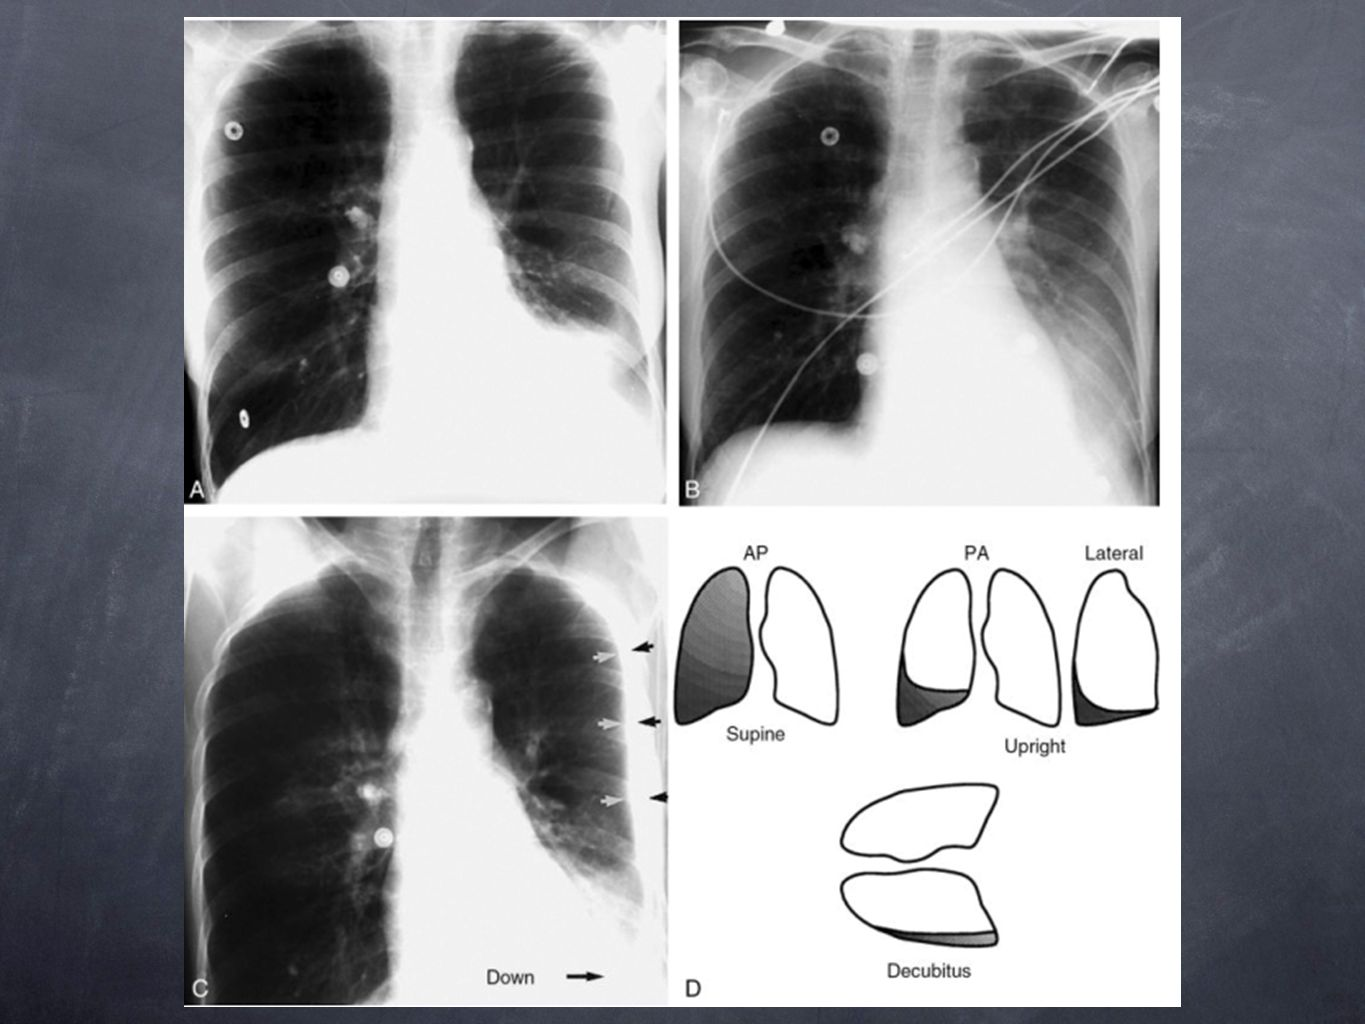 Pleural effusion appearance depends on the patient's position